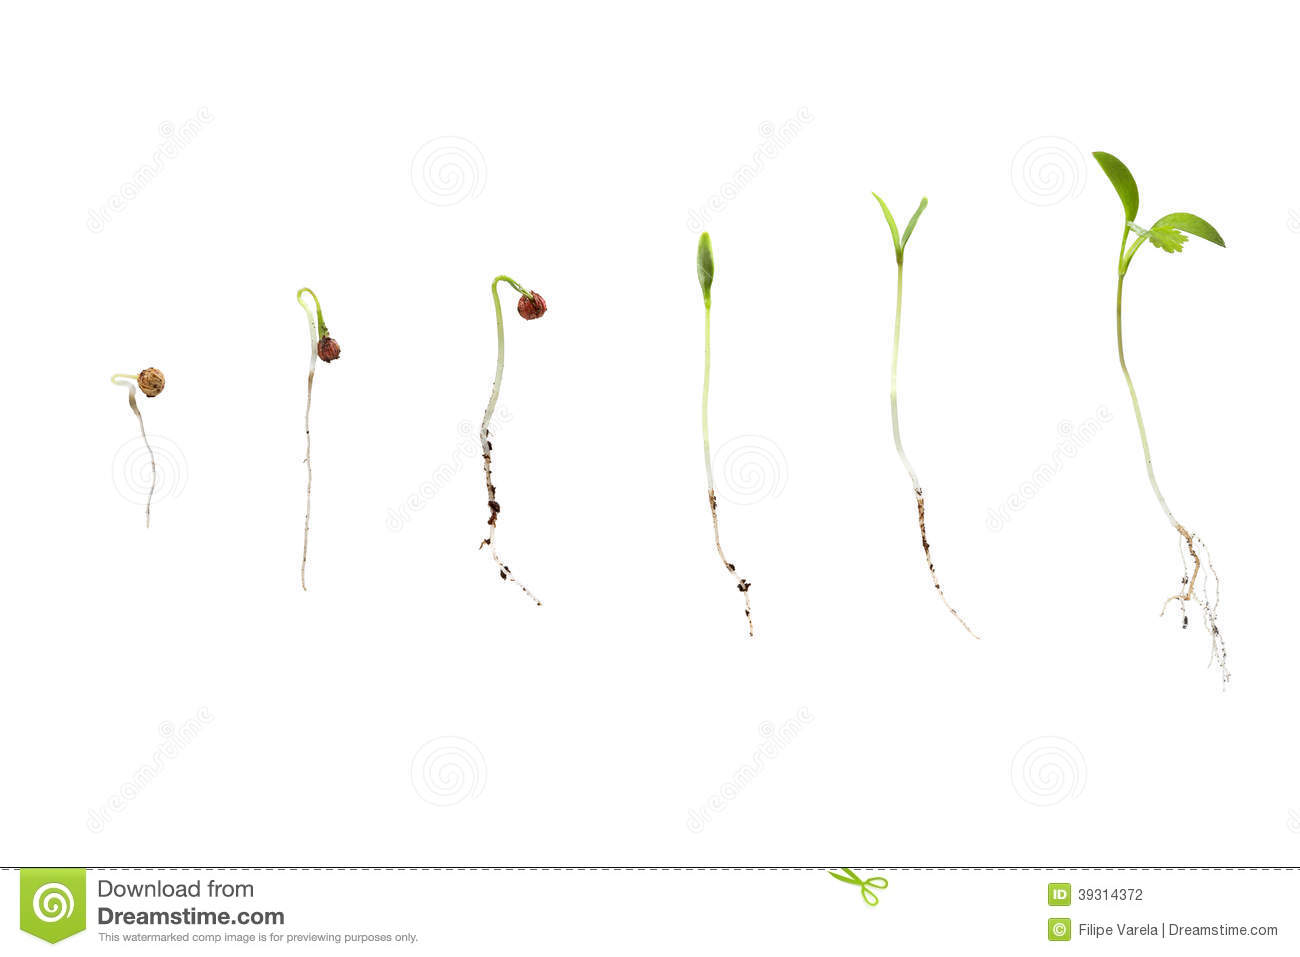 Stock Photography Cilantro Seed Germination Isolated White Different Stages Image39314372 on Plant Life Cycle Print